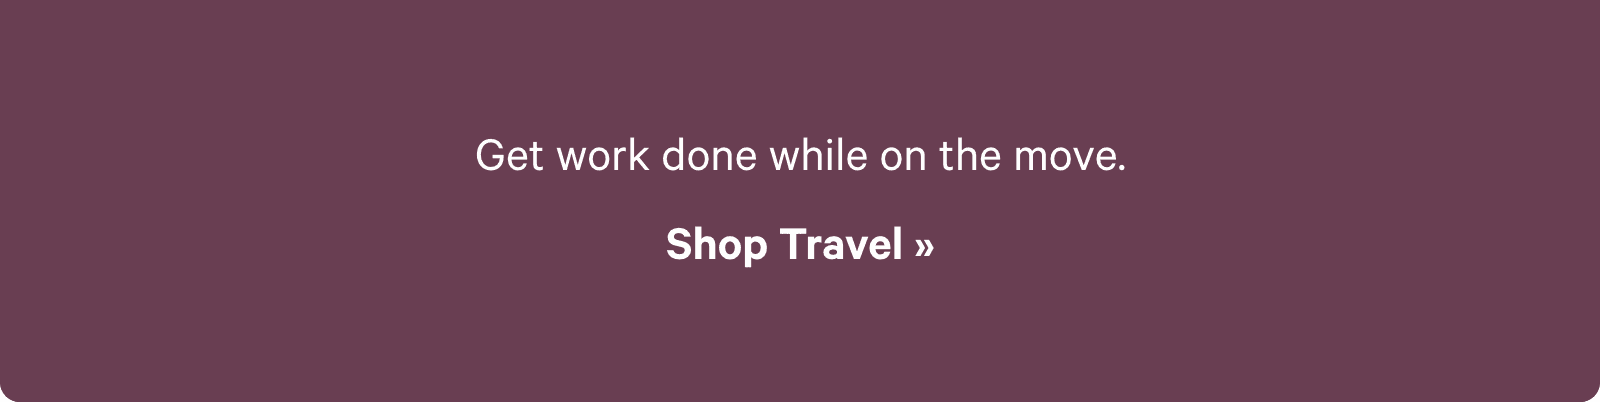 Get work done while one the move. Shop Travel ?